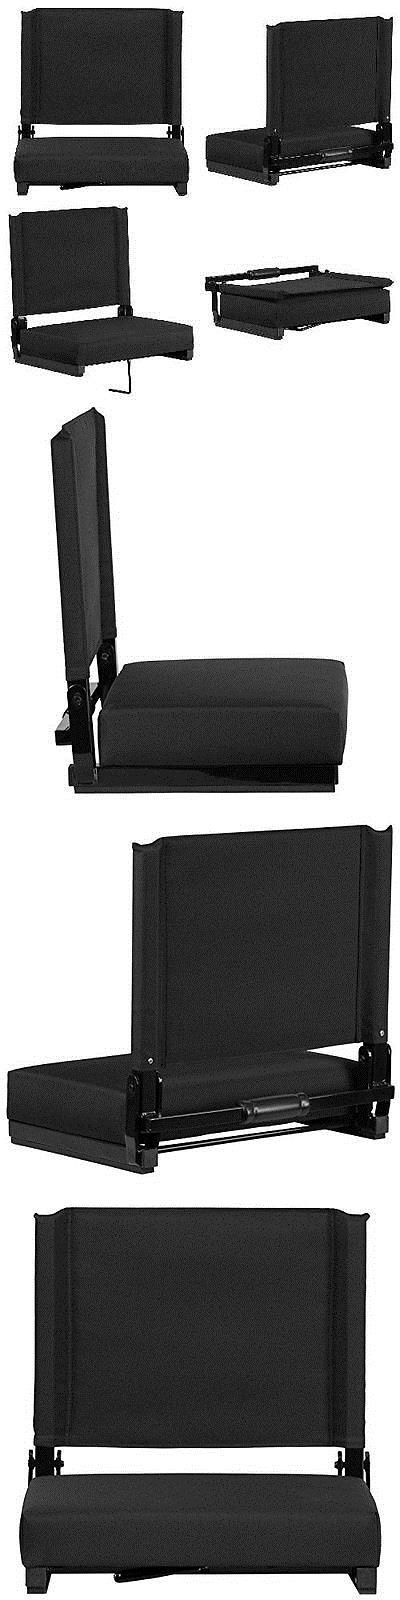 Other Outdoor Sports 159048: Bleacher Seats With Backs Black Stadium Chair Cushion Comfy Portable New Games -> BUY IT NOW ONLY: $49.49 on eBay!